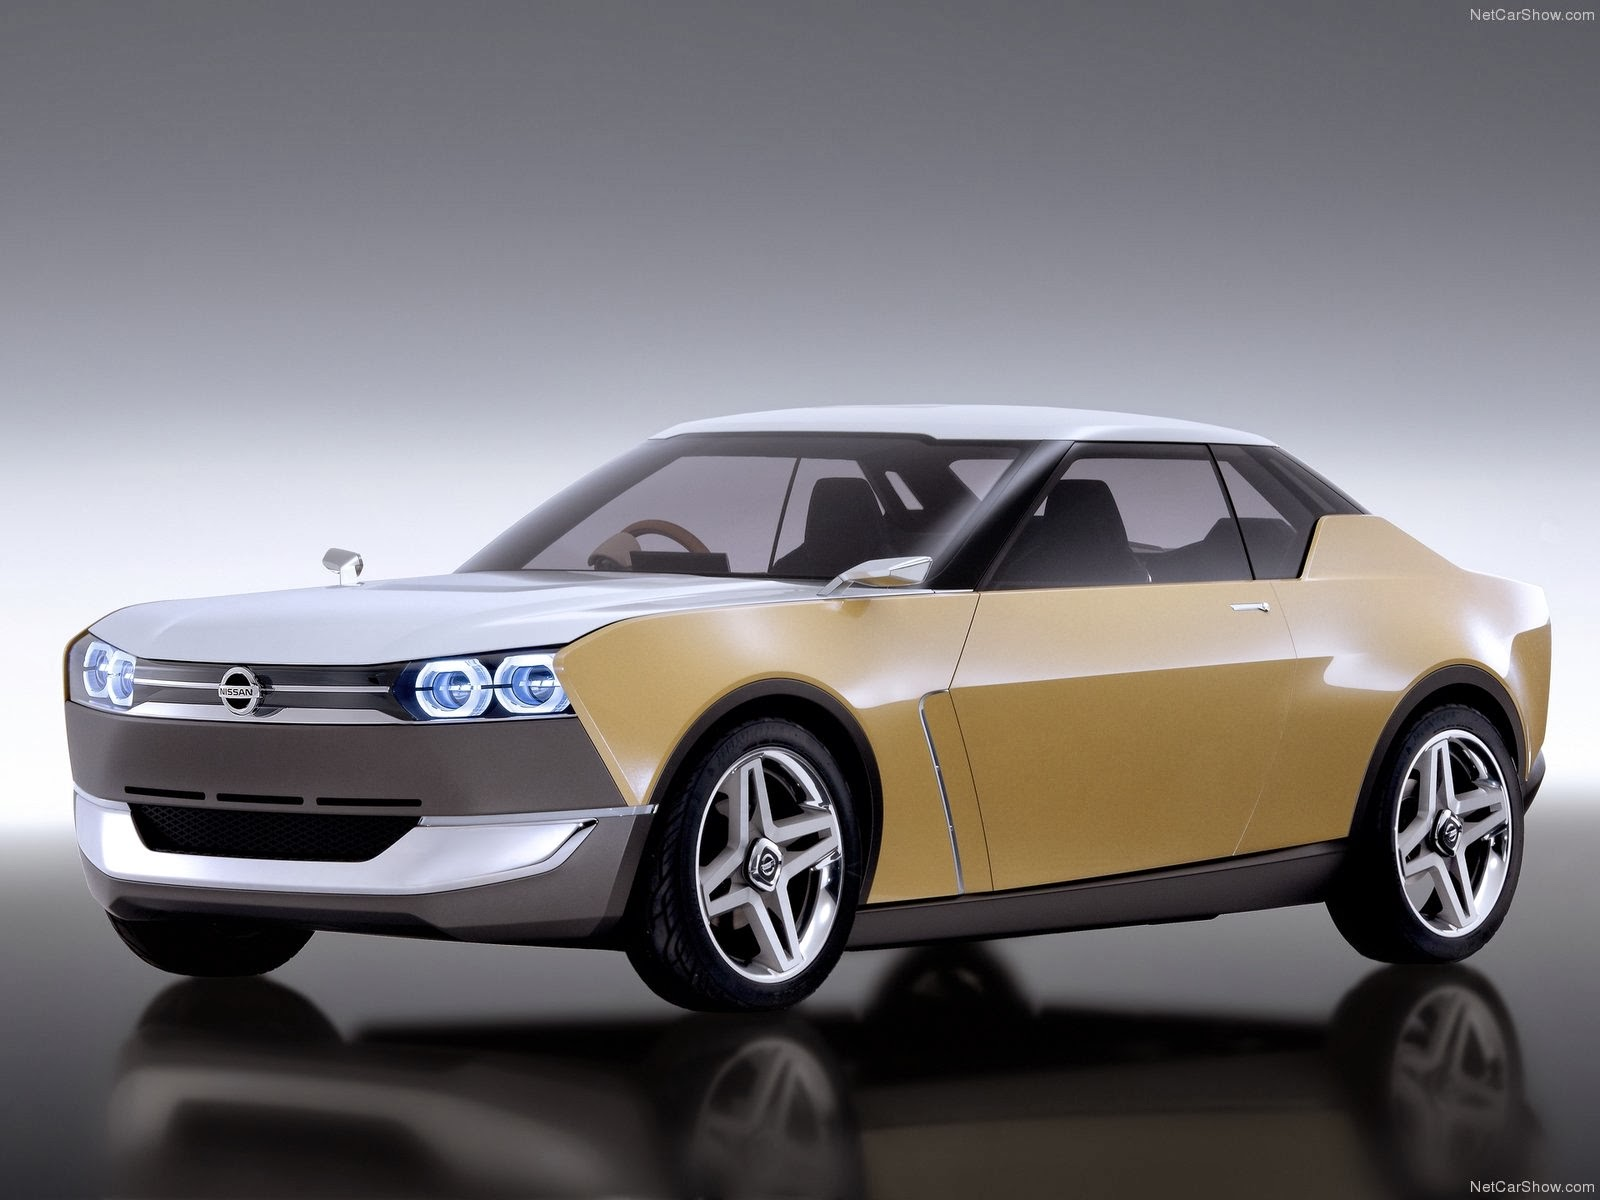 cars of yesterday and tomorrow: nissan idx concept 2018